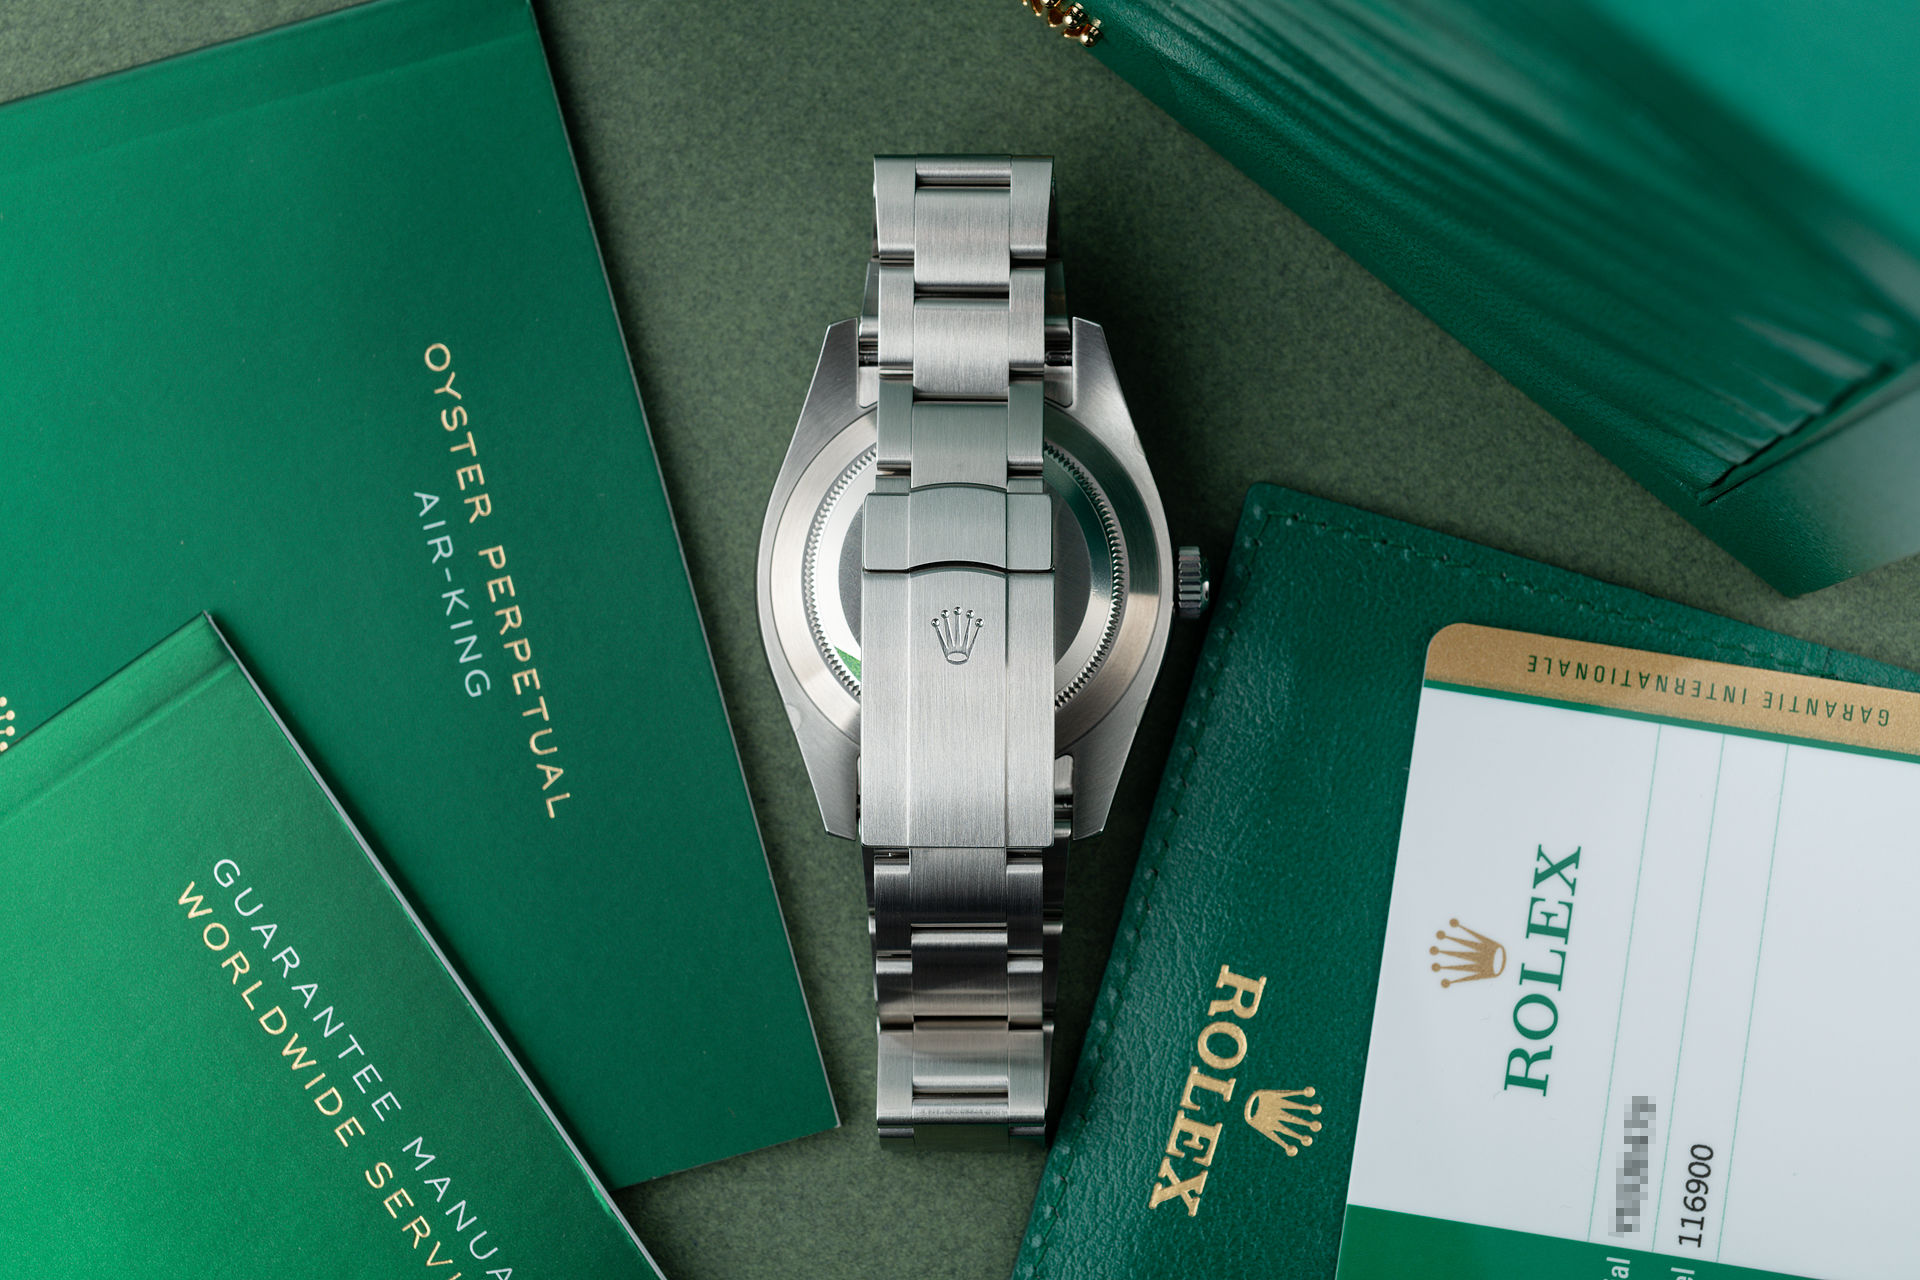 ref 116900 | Brand New Full 5-Year Rolex Warranty  | Rolex Air-King